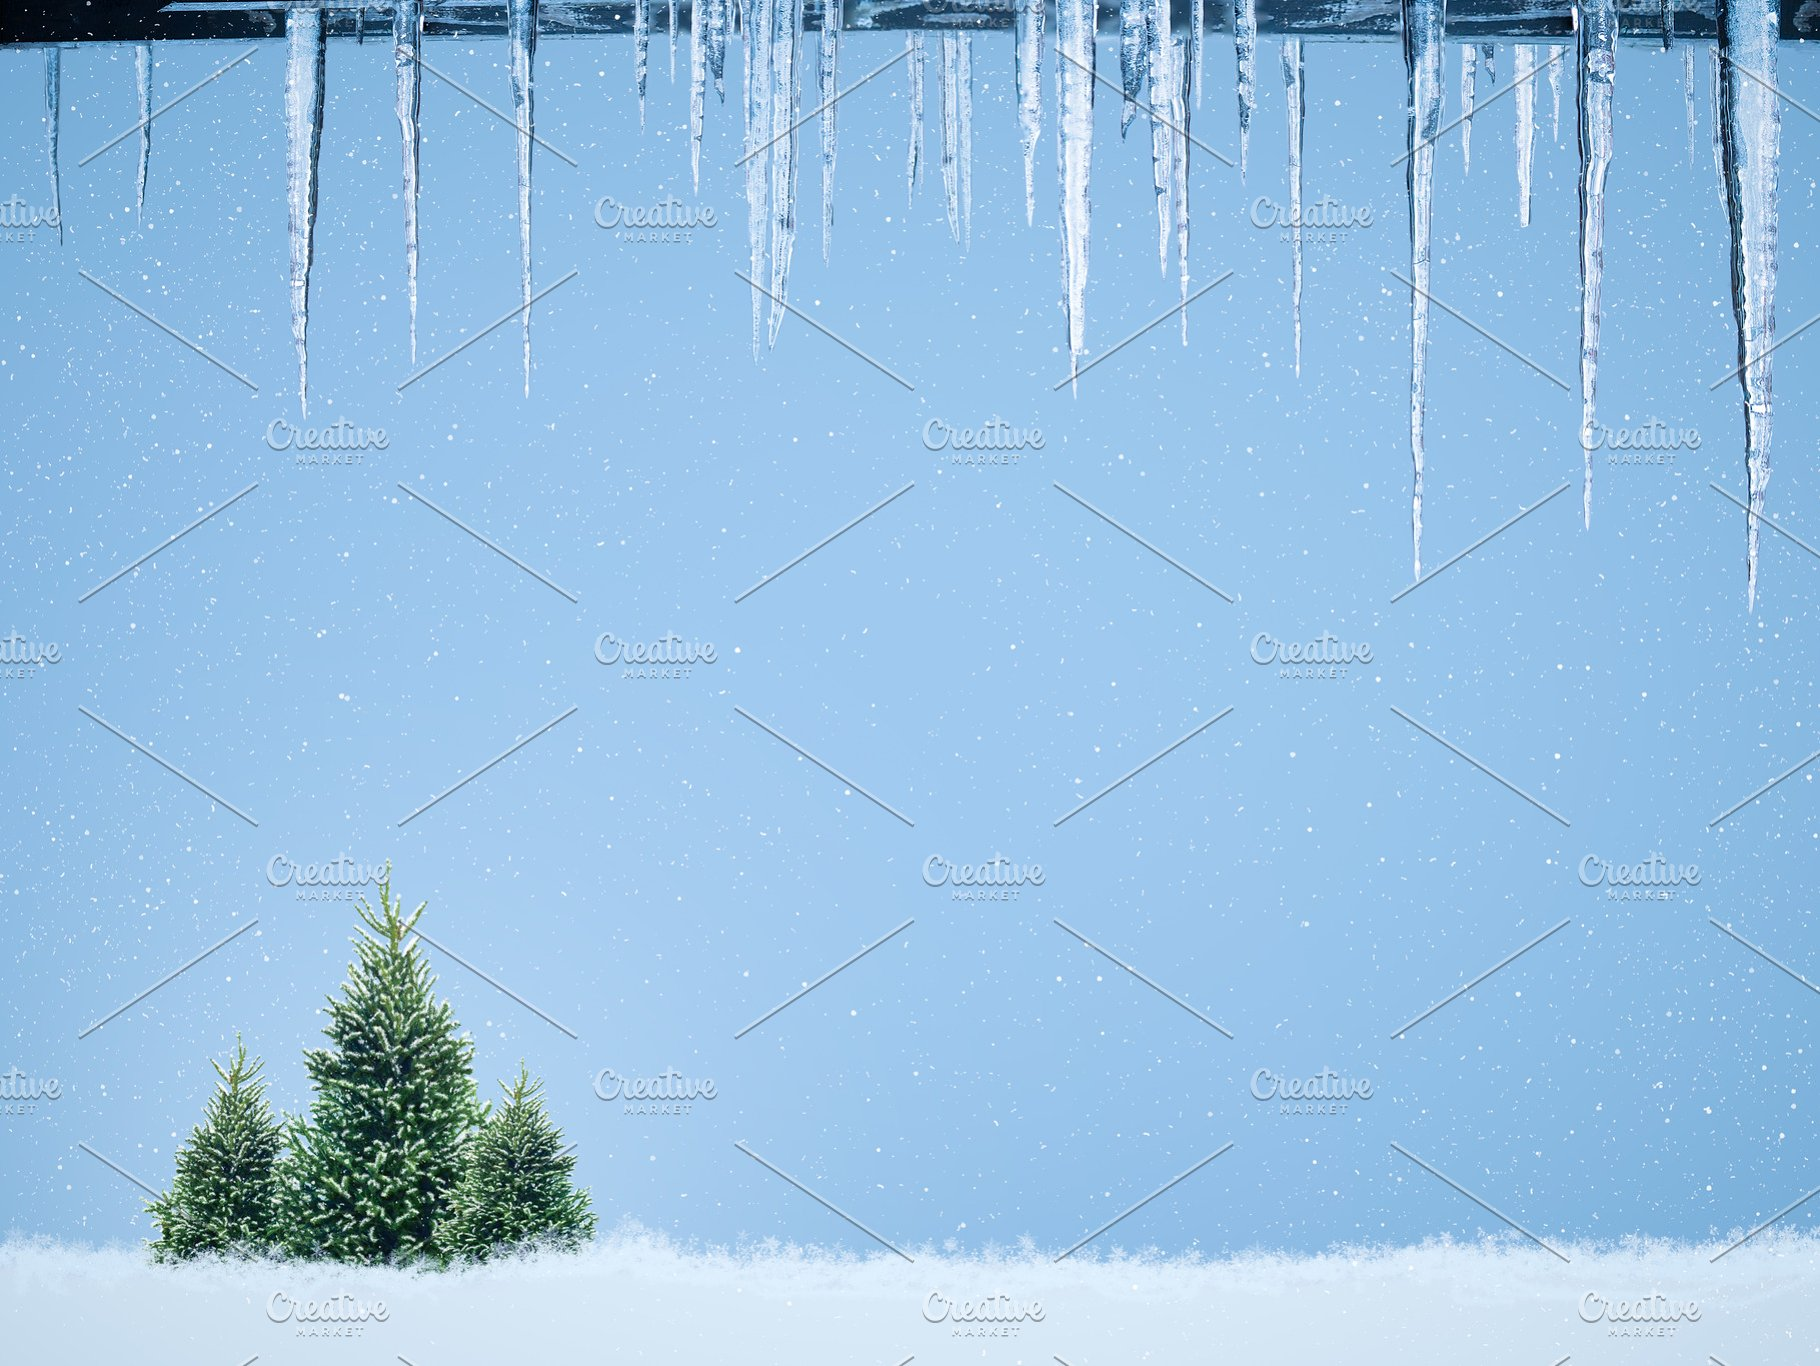 Icicles For Christmas Trees.Beautiful Christmas Background With Icicles Christmas Trees And Snow